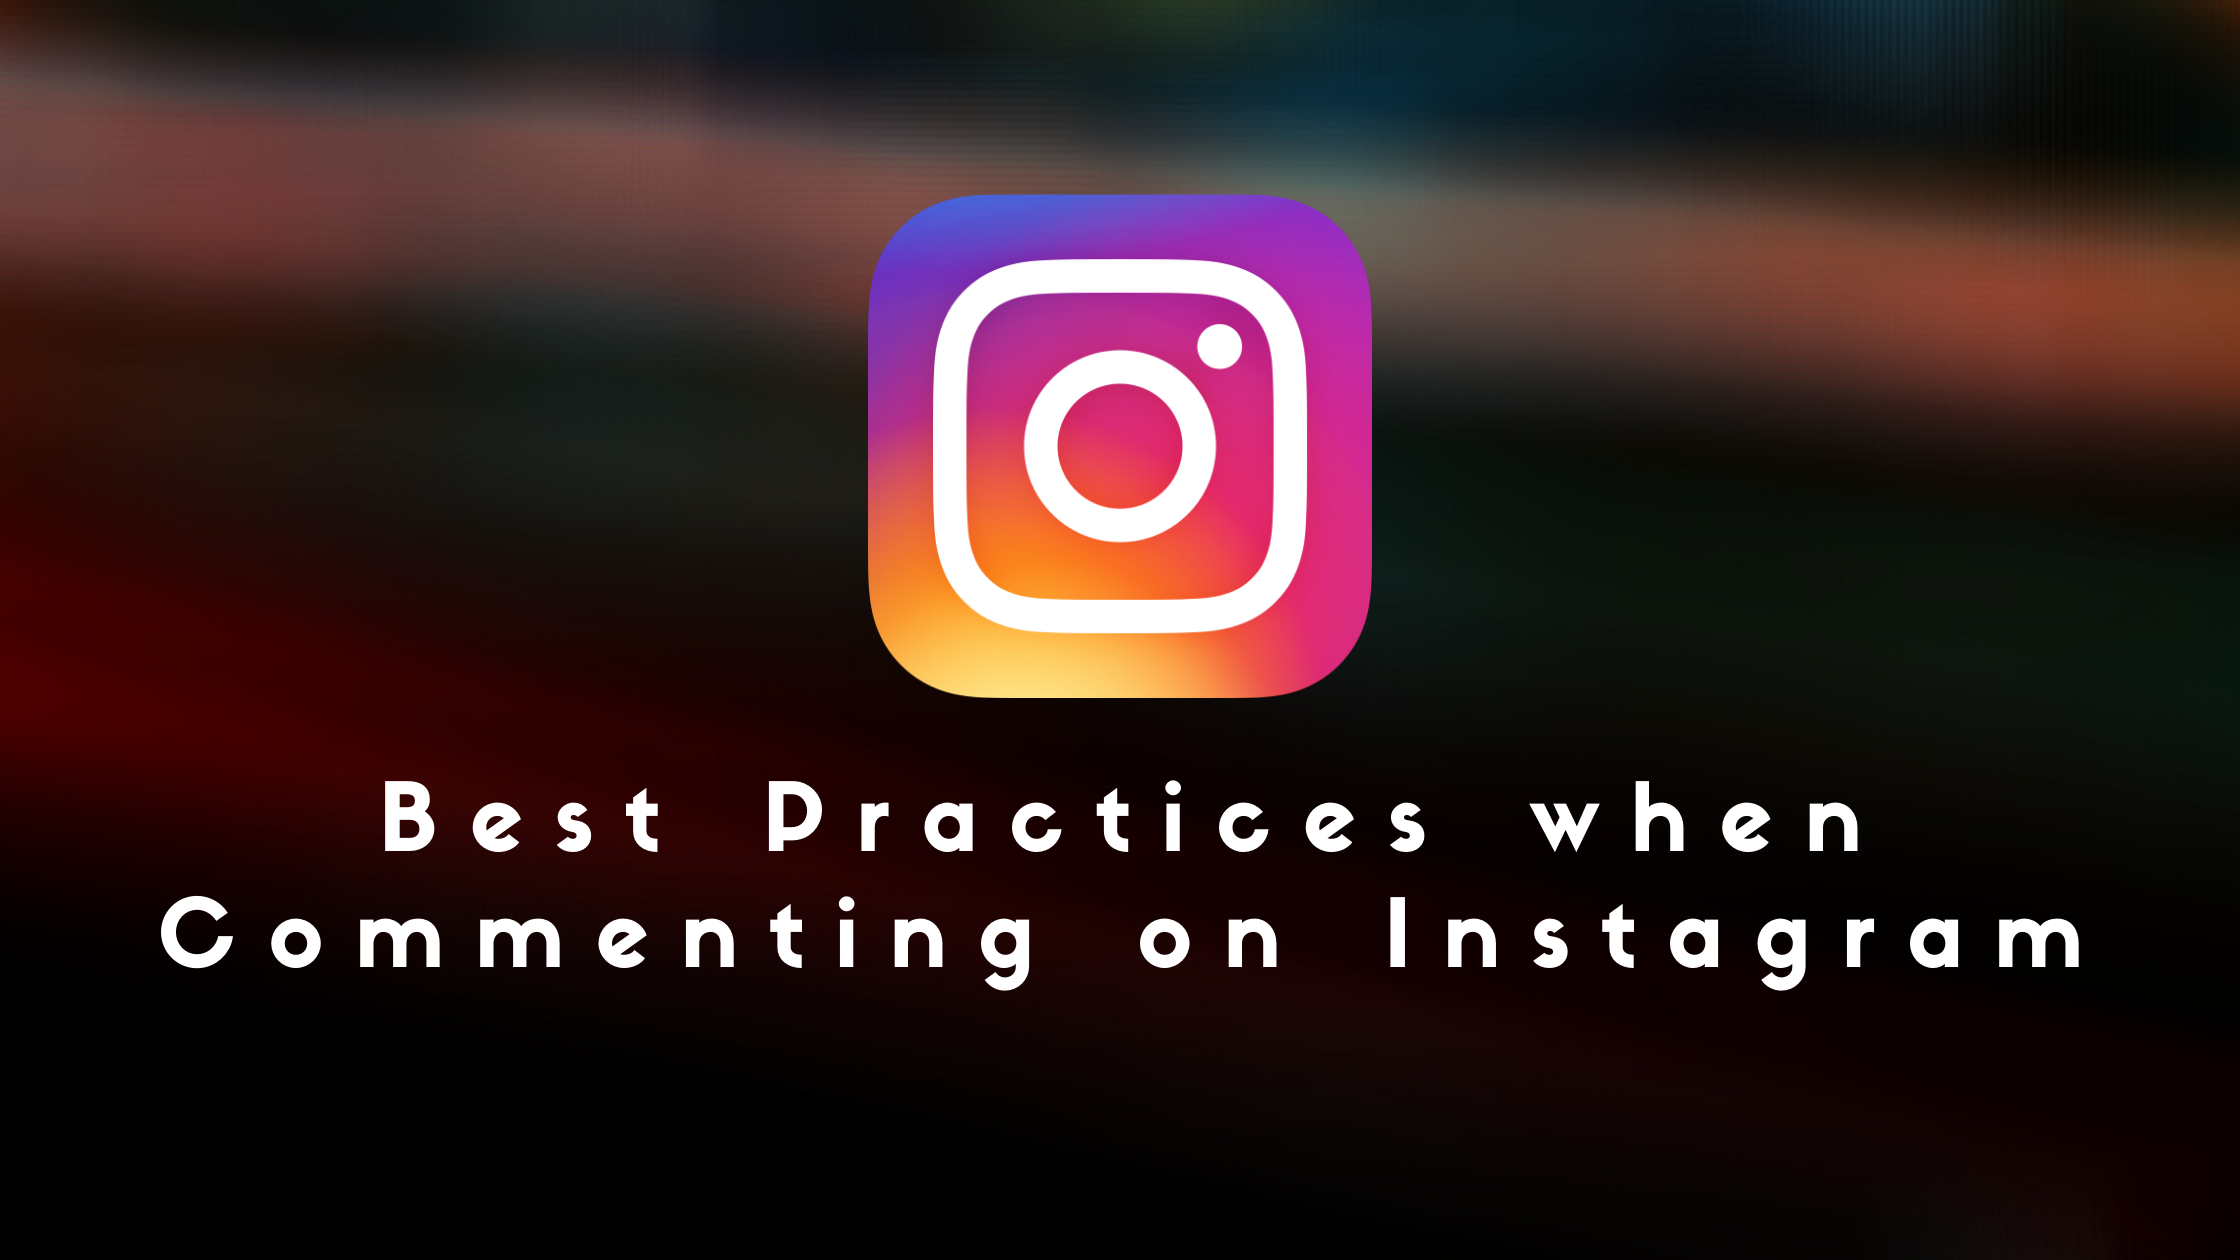 Best Practices when Commenting on Instagram